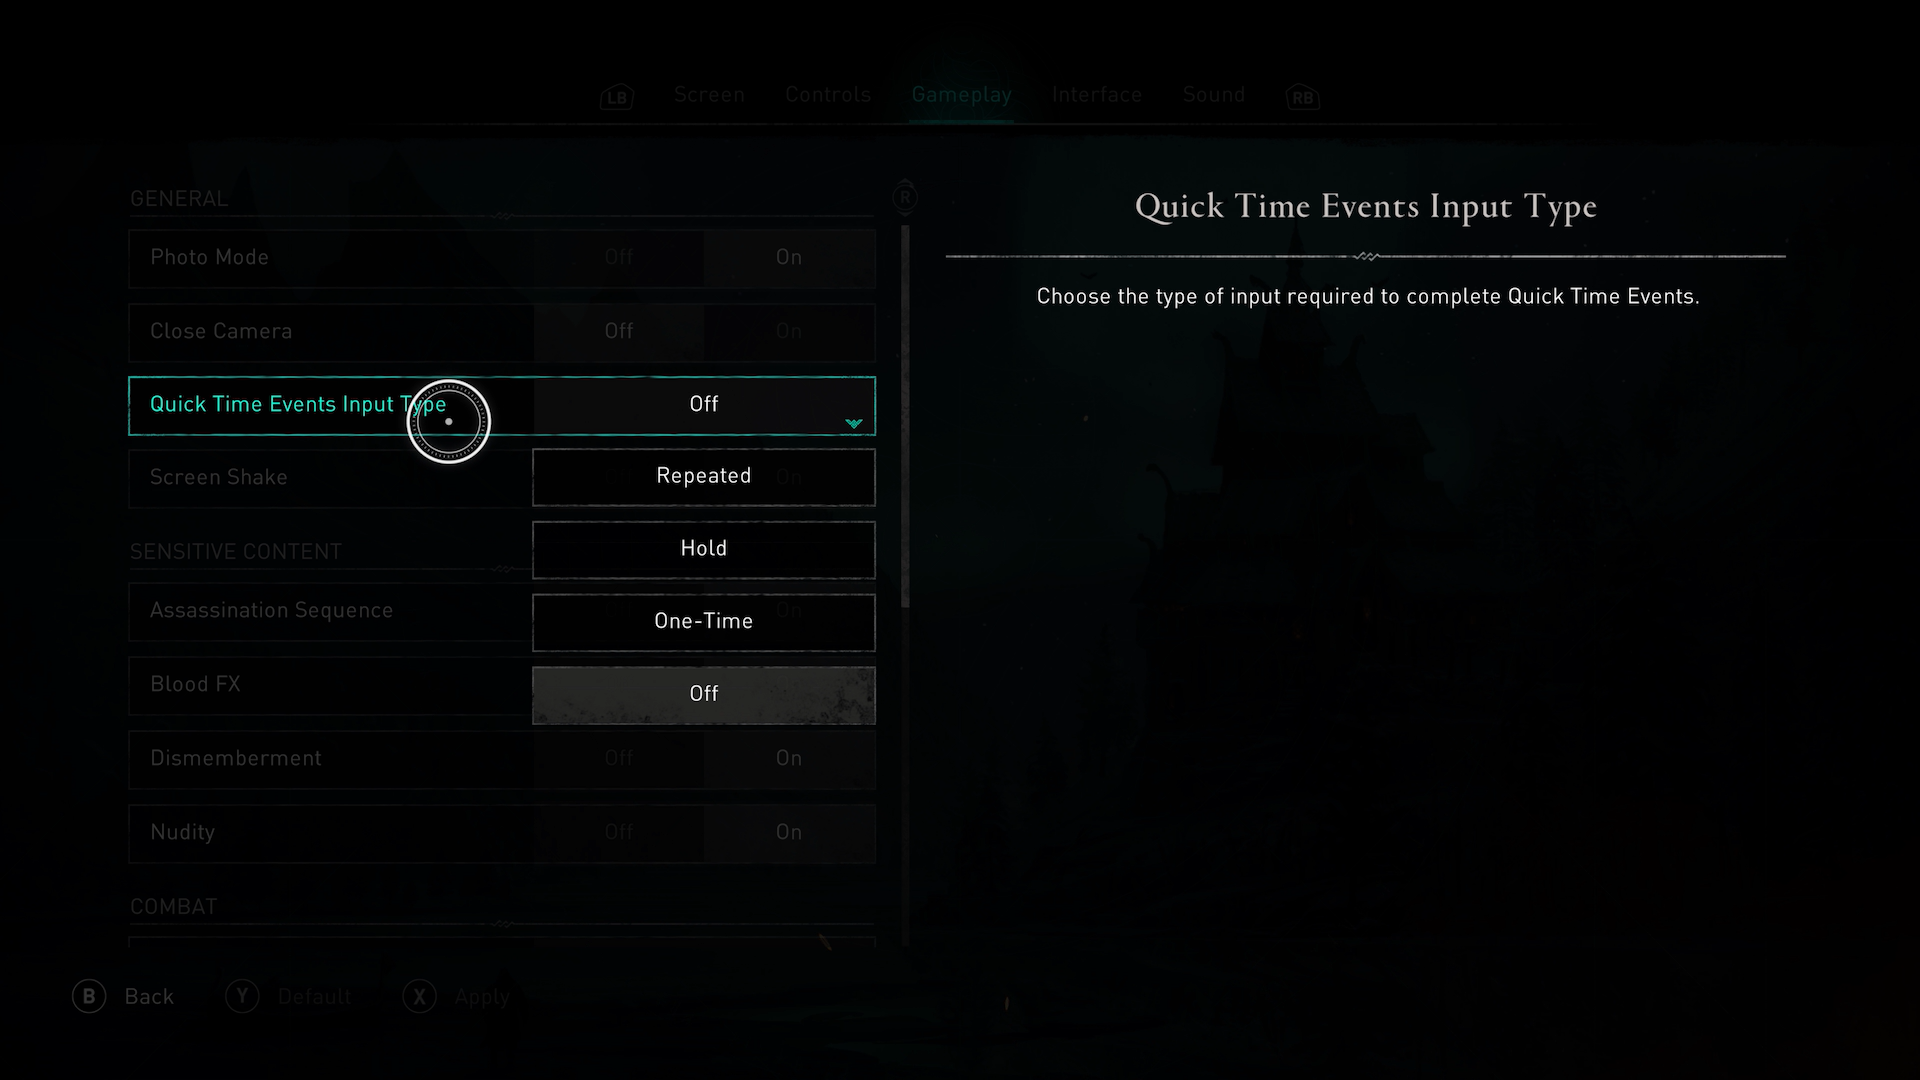 A screenshot showing the Quick Time Events options in Assassins Creed Valhalla.